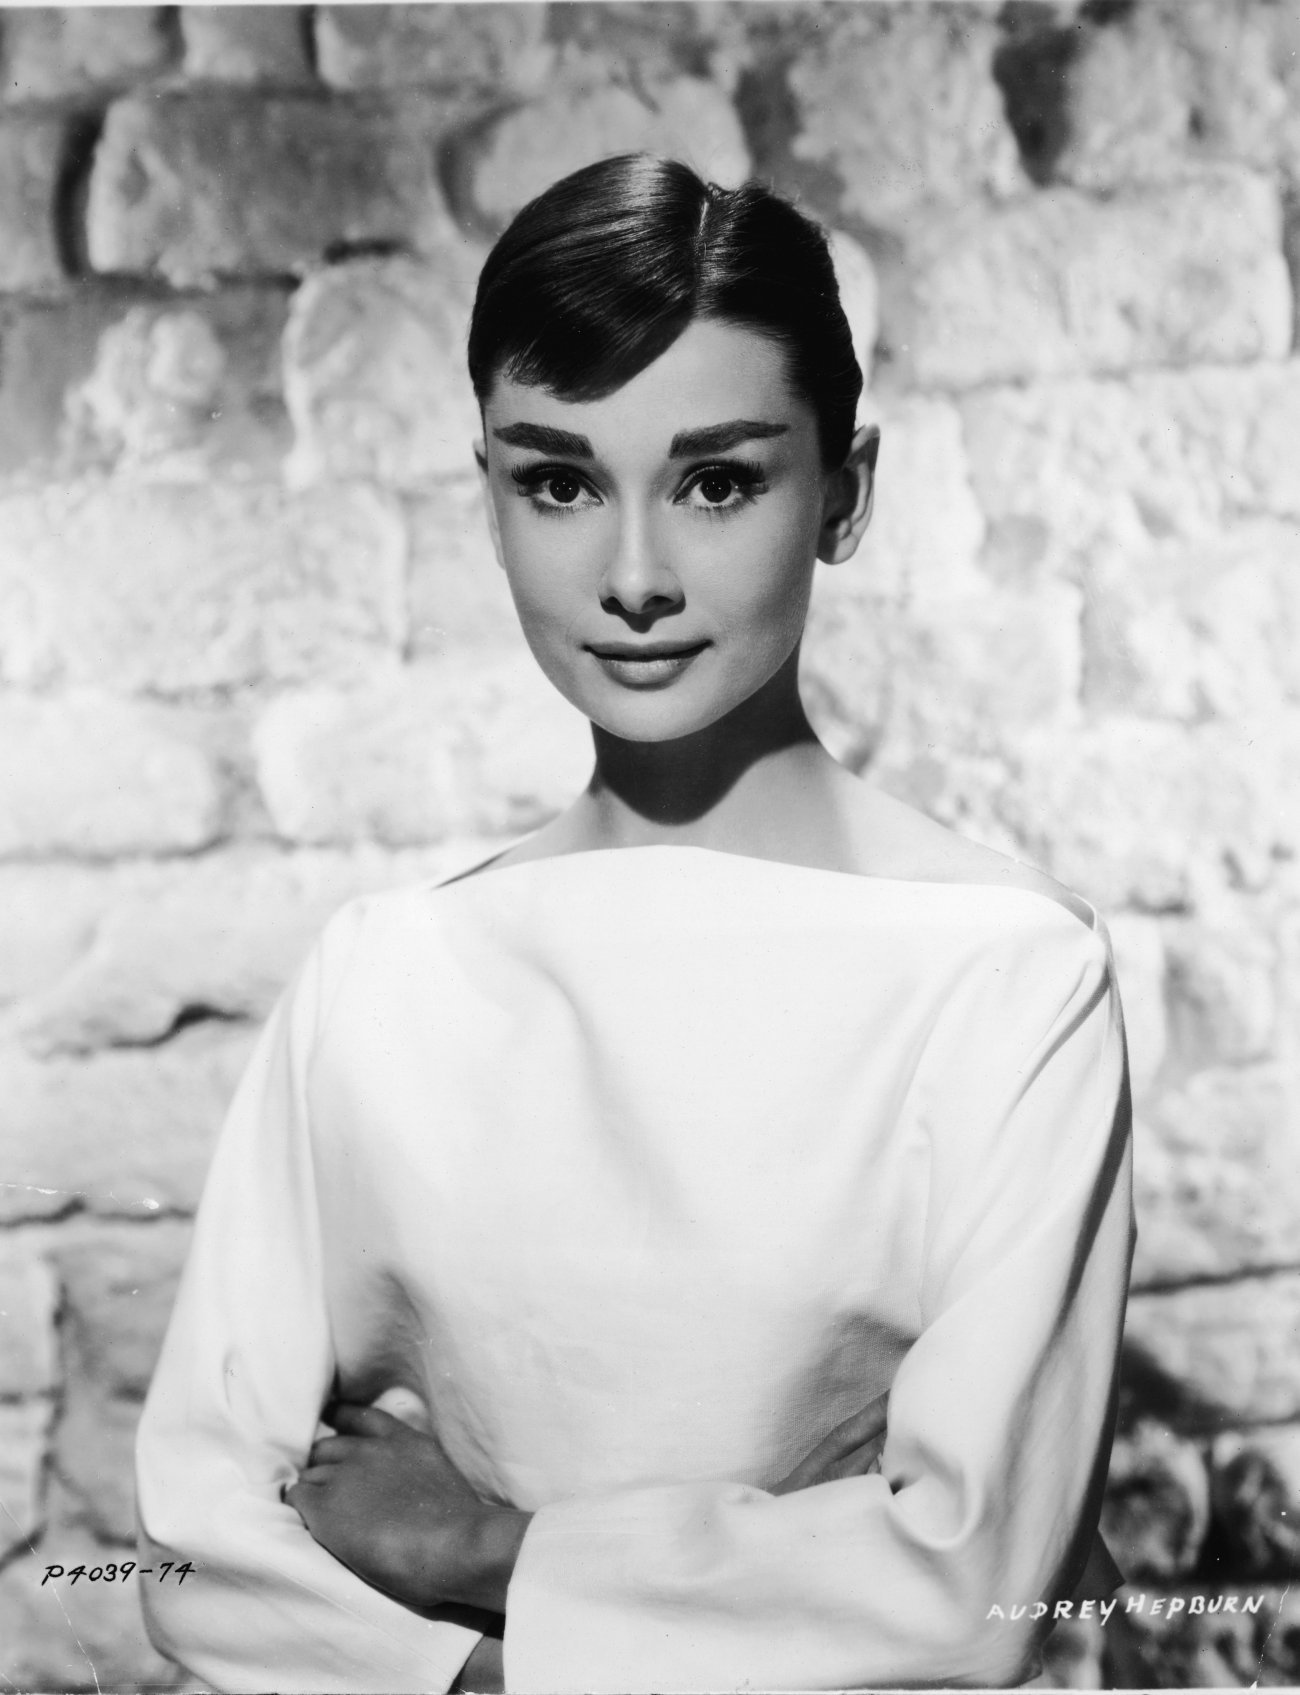 Audrey Hepburn Audrey Hepburn Photo 21766564 Fanpop